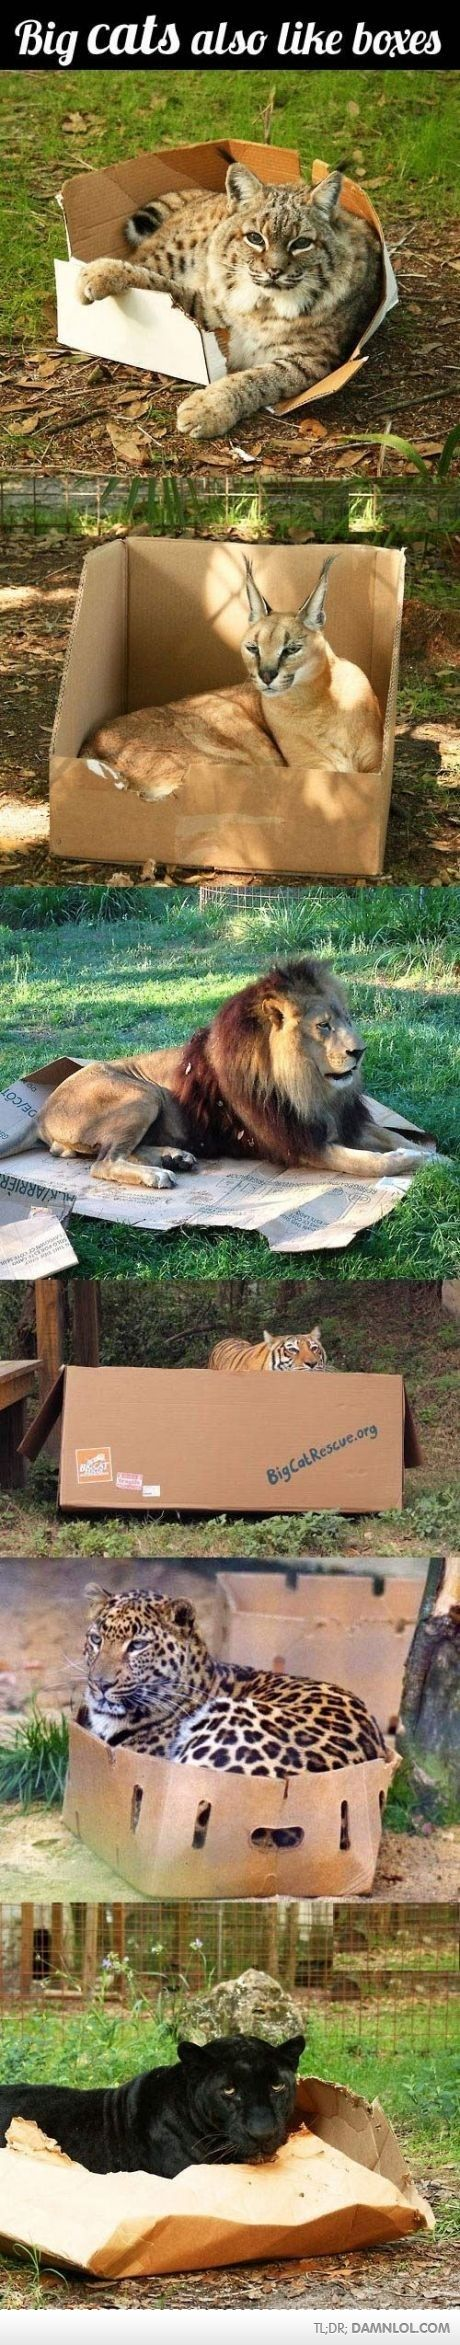 Big Cats Also Like Boxes! Haha I find this so funny. Silly kitties.